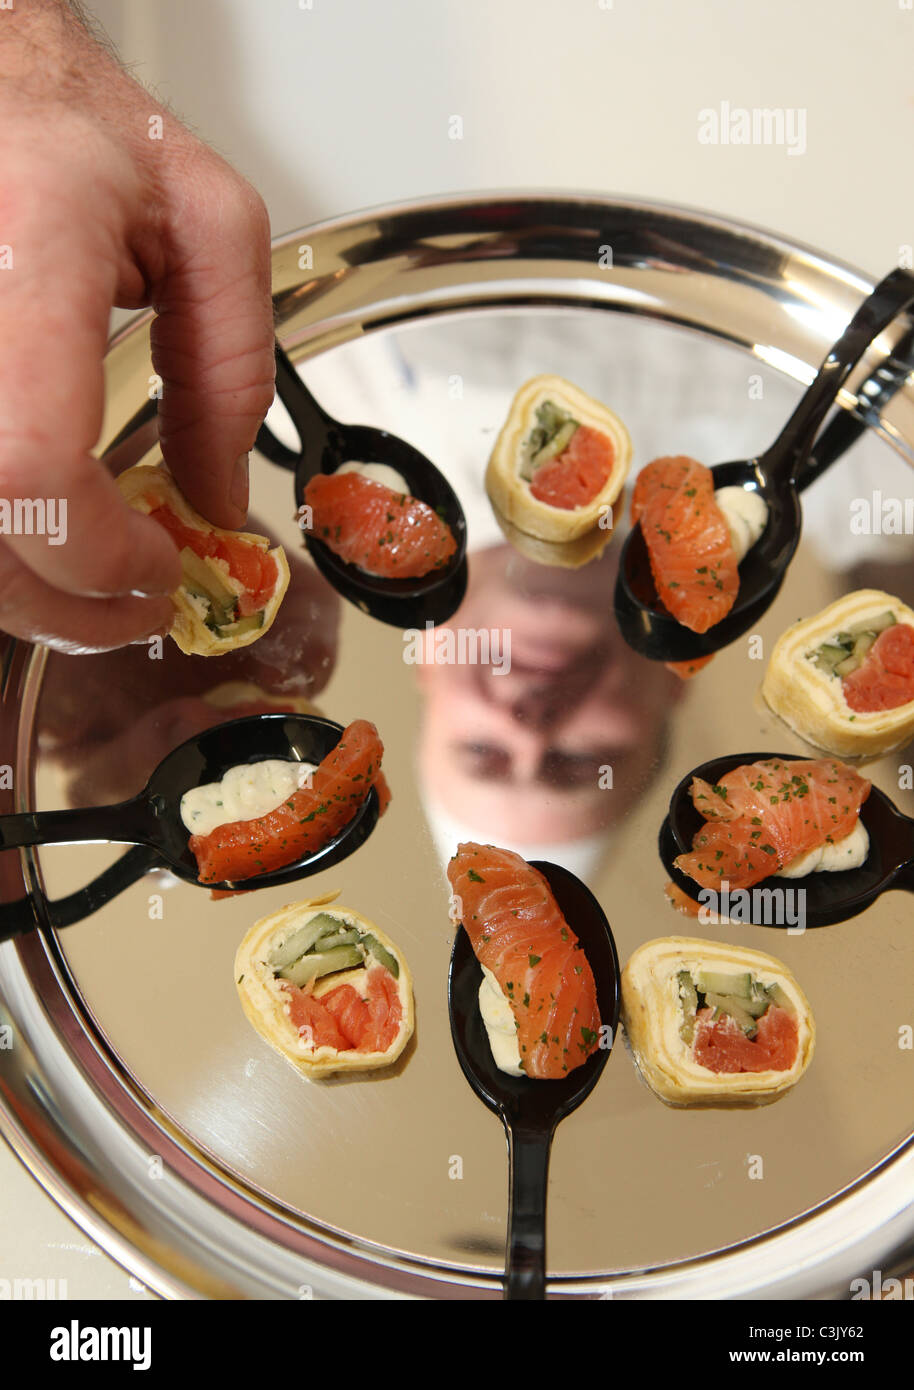 A restaurant chef preparing canapes on a silver tray - Stock Image